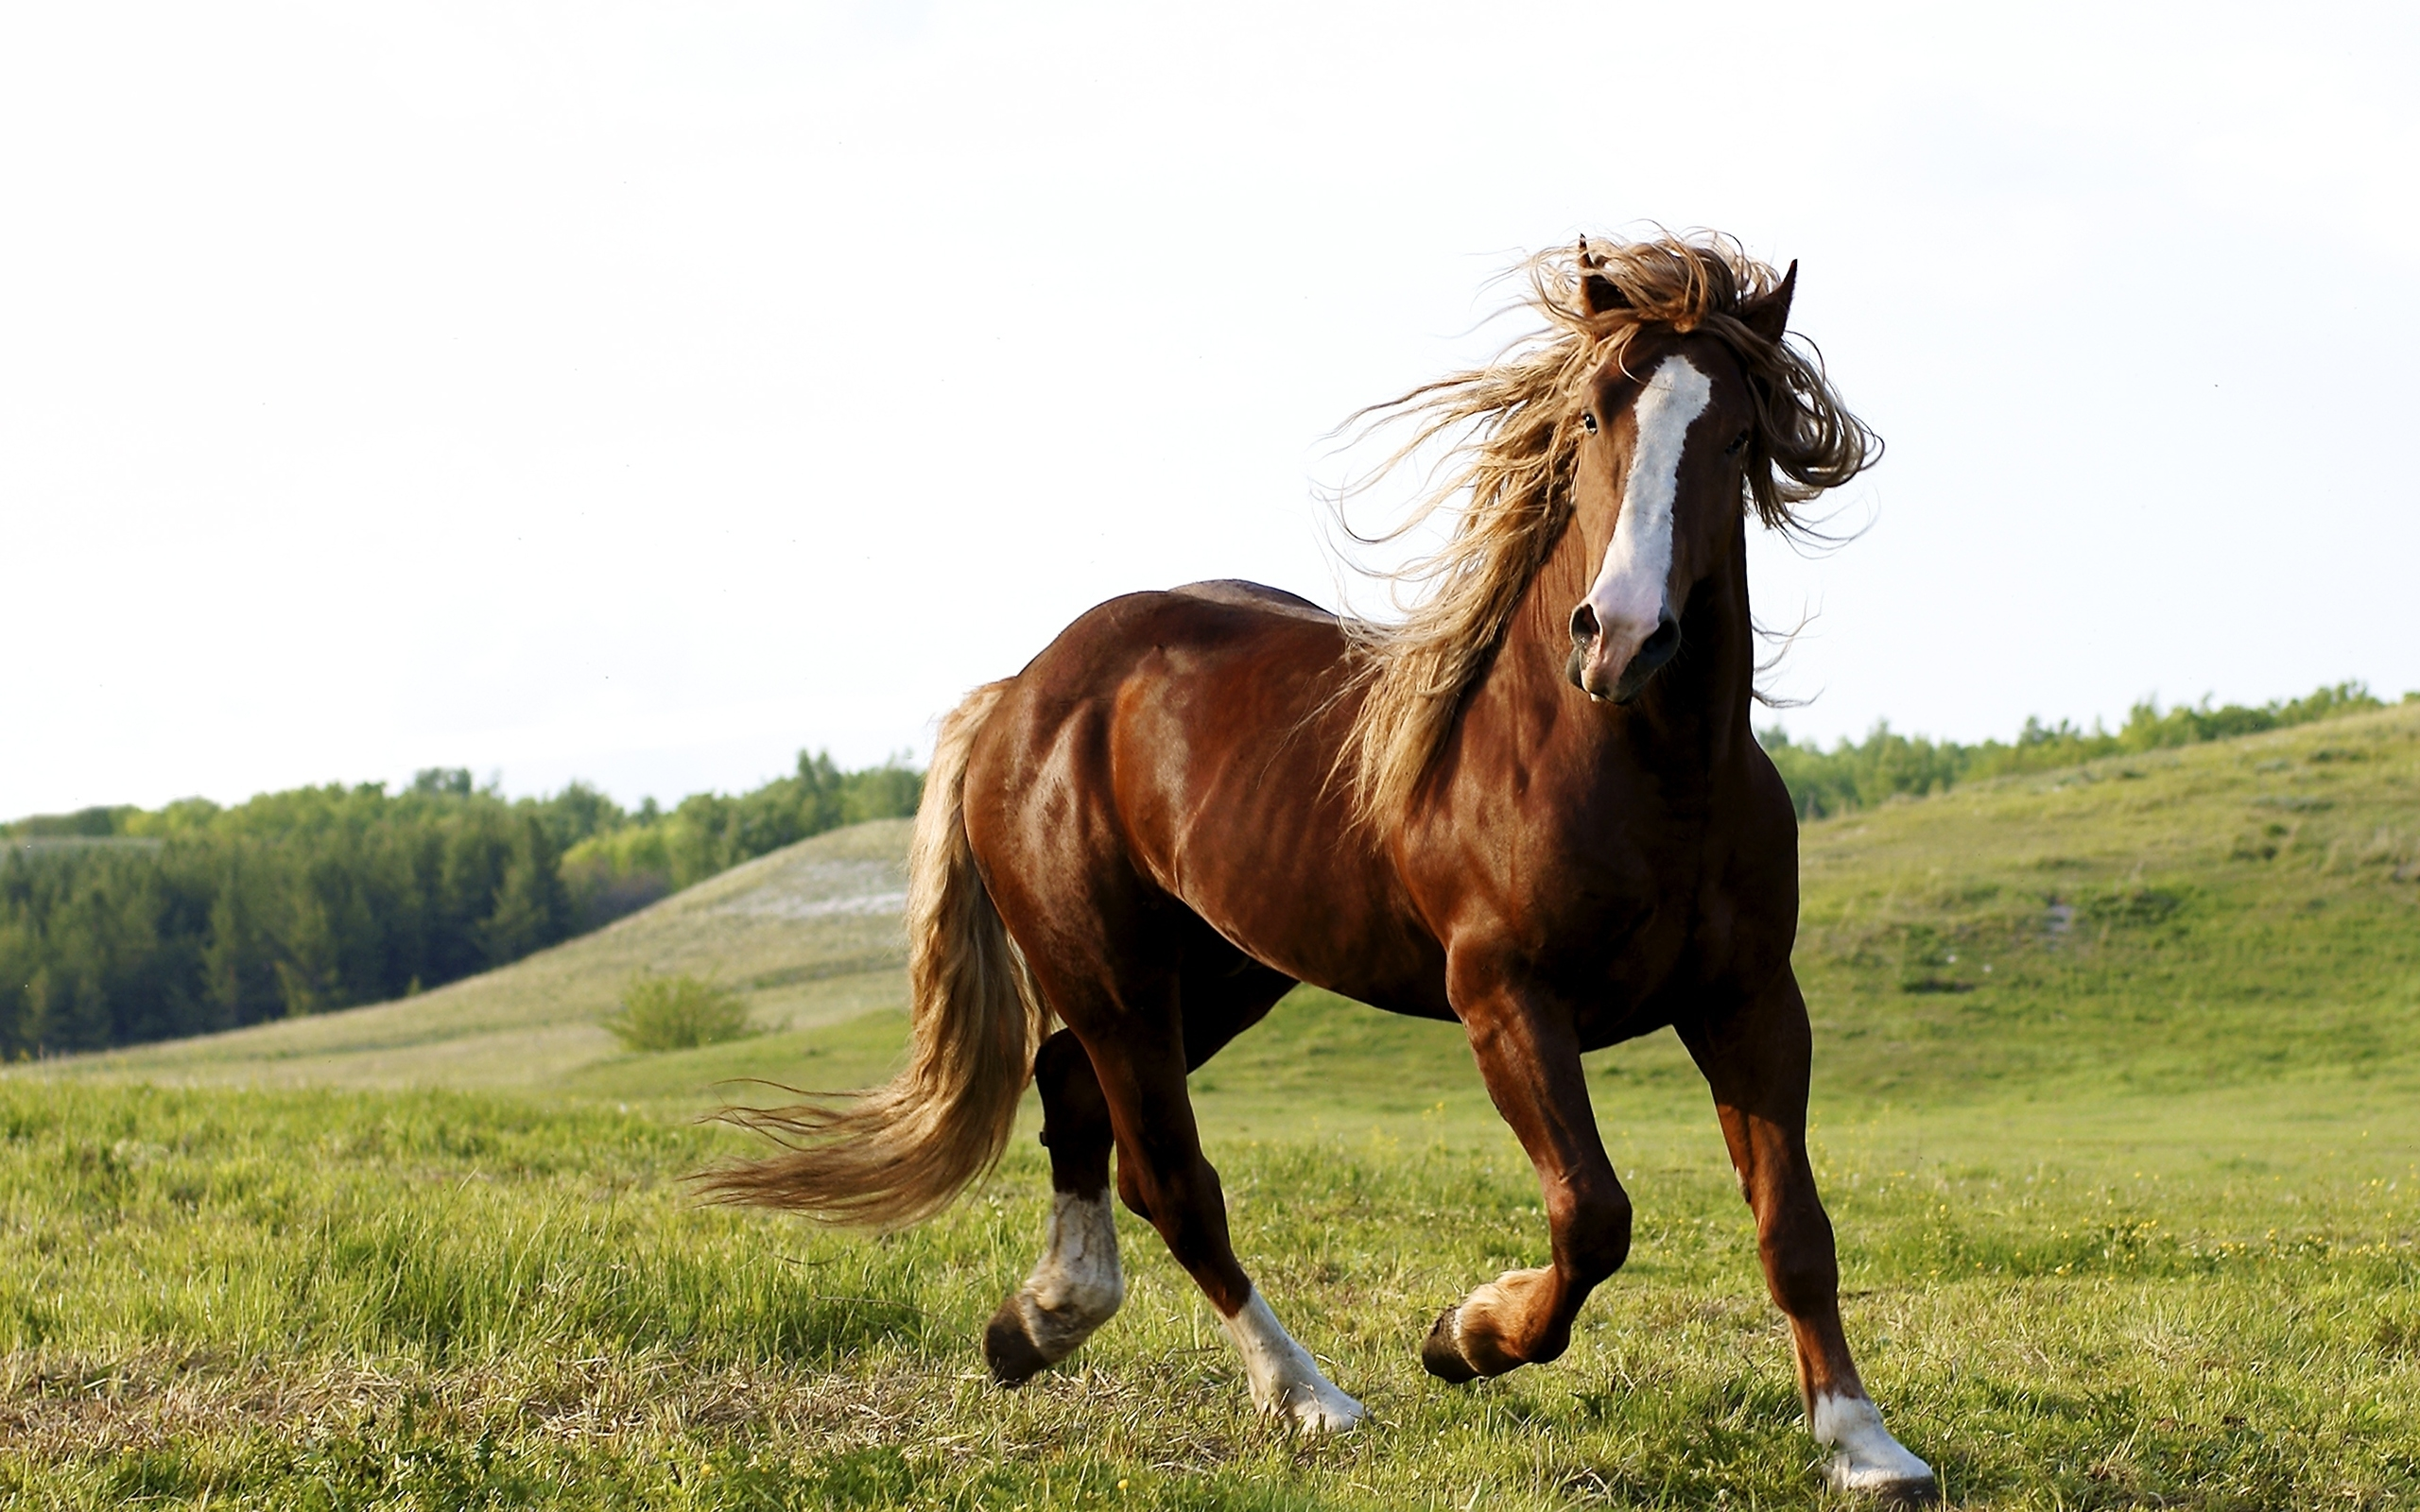 Free Download Animals Horses Riding A Horse 033632 Jpg 2560x1600